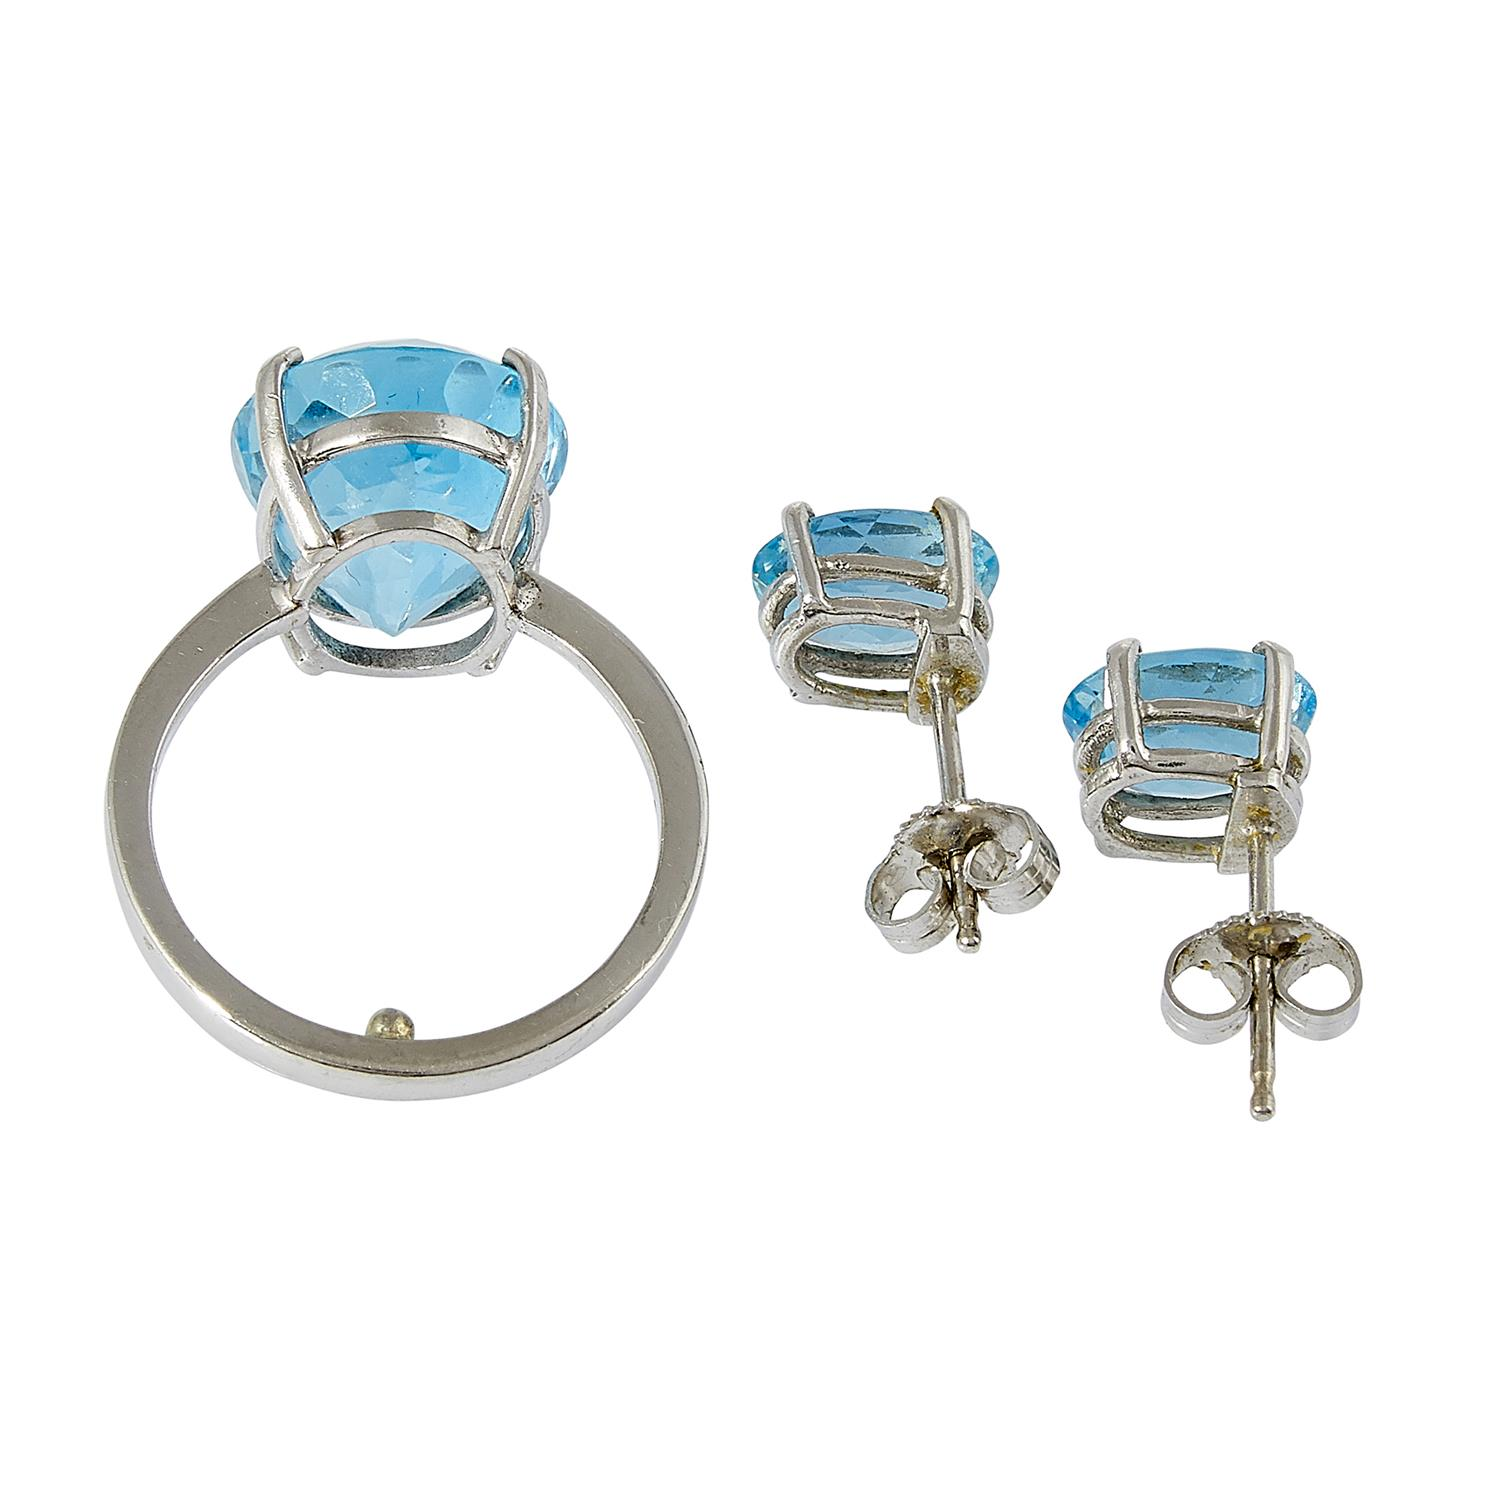 Contemporary aquamarine demi-parure: ring and earrings ring size: 4 1/2